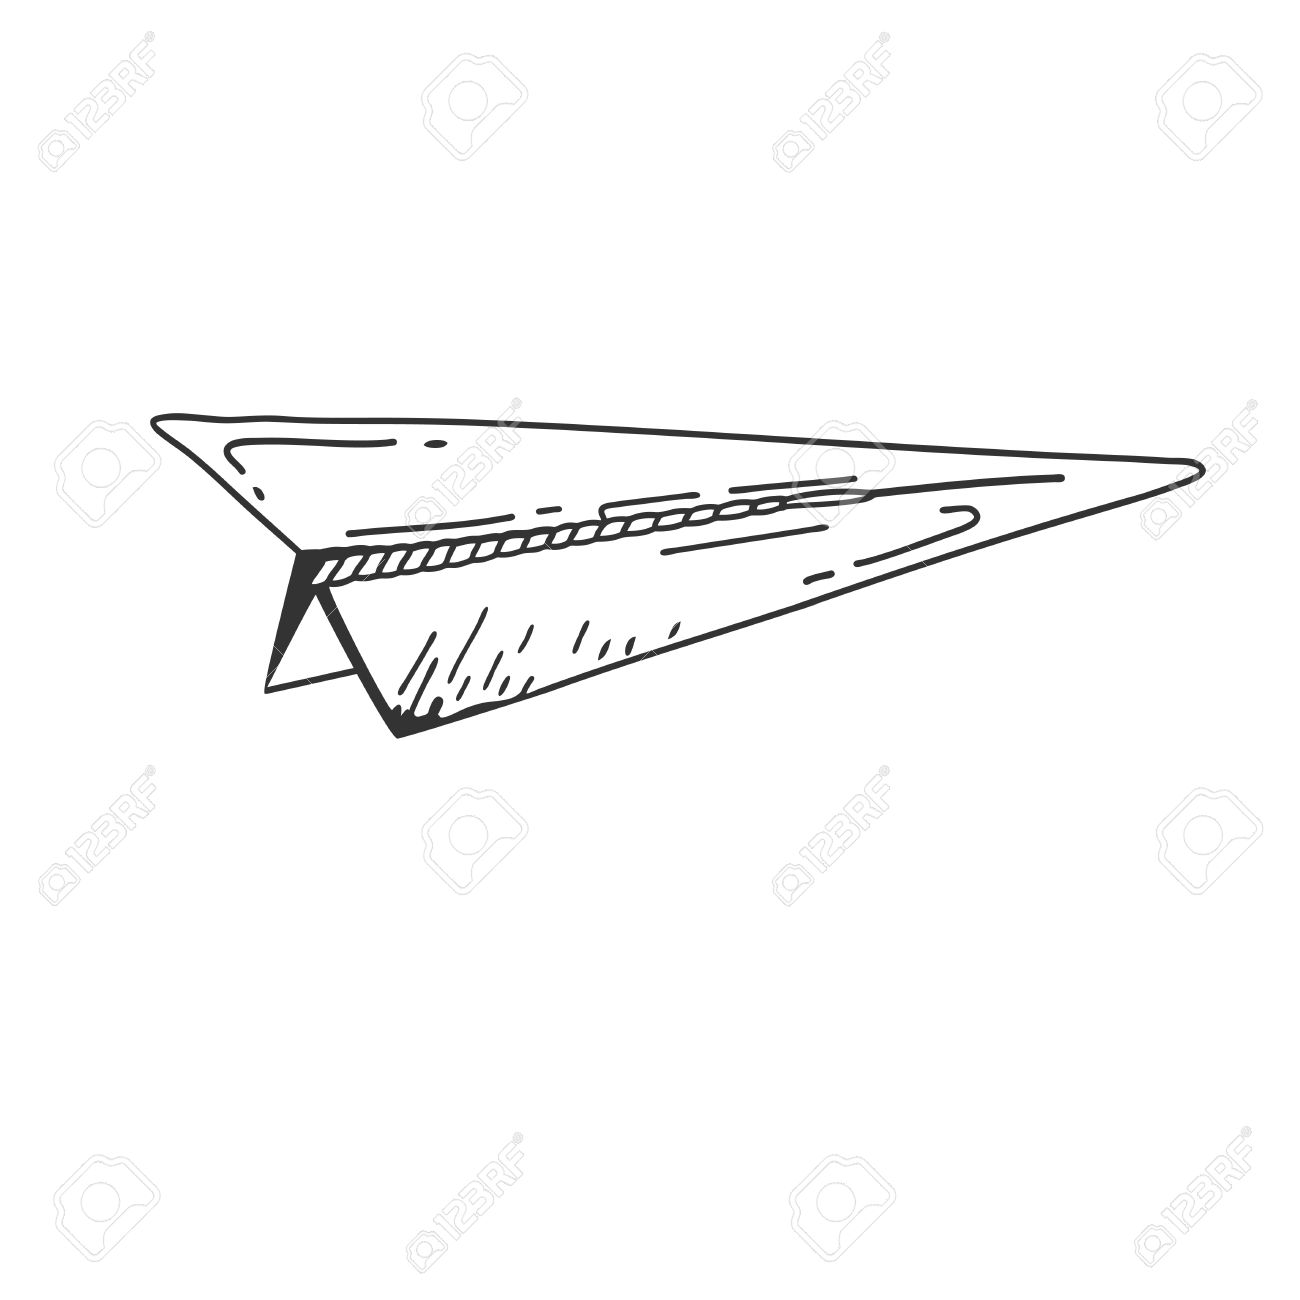 1300x1300 Airplane Symbol. Doodle Style Paper Airplane Icon. Hand Drawn